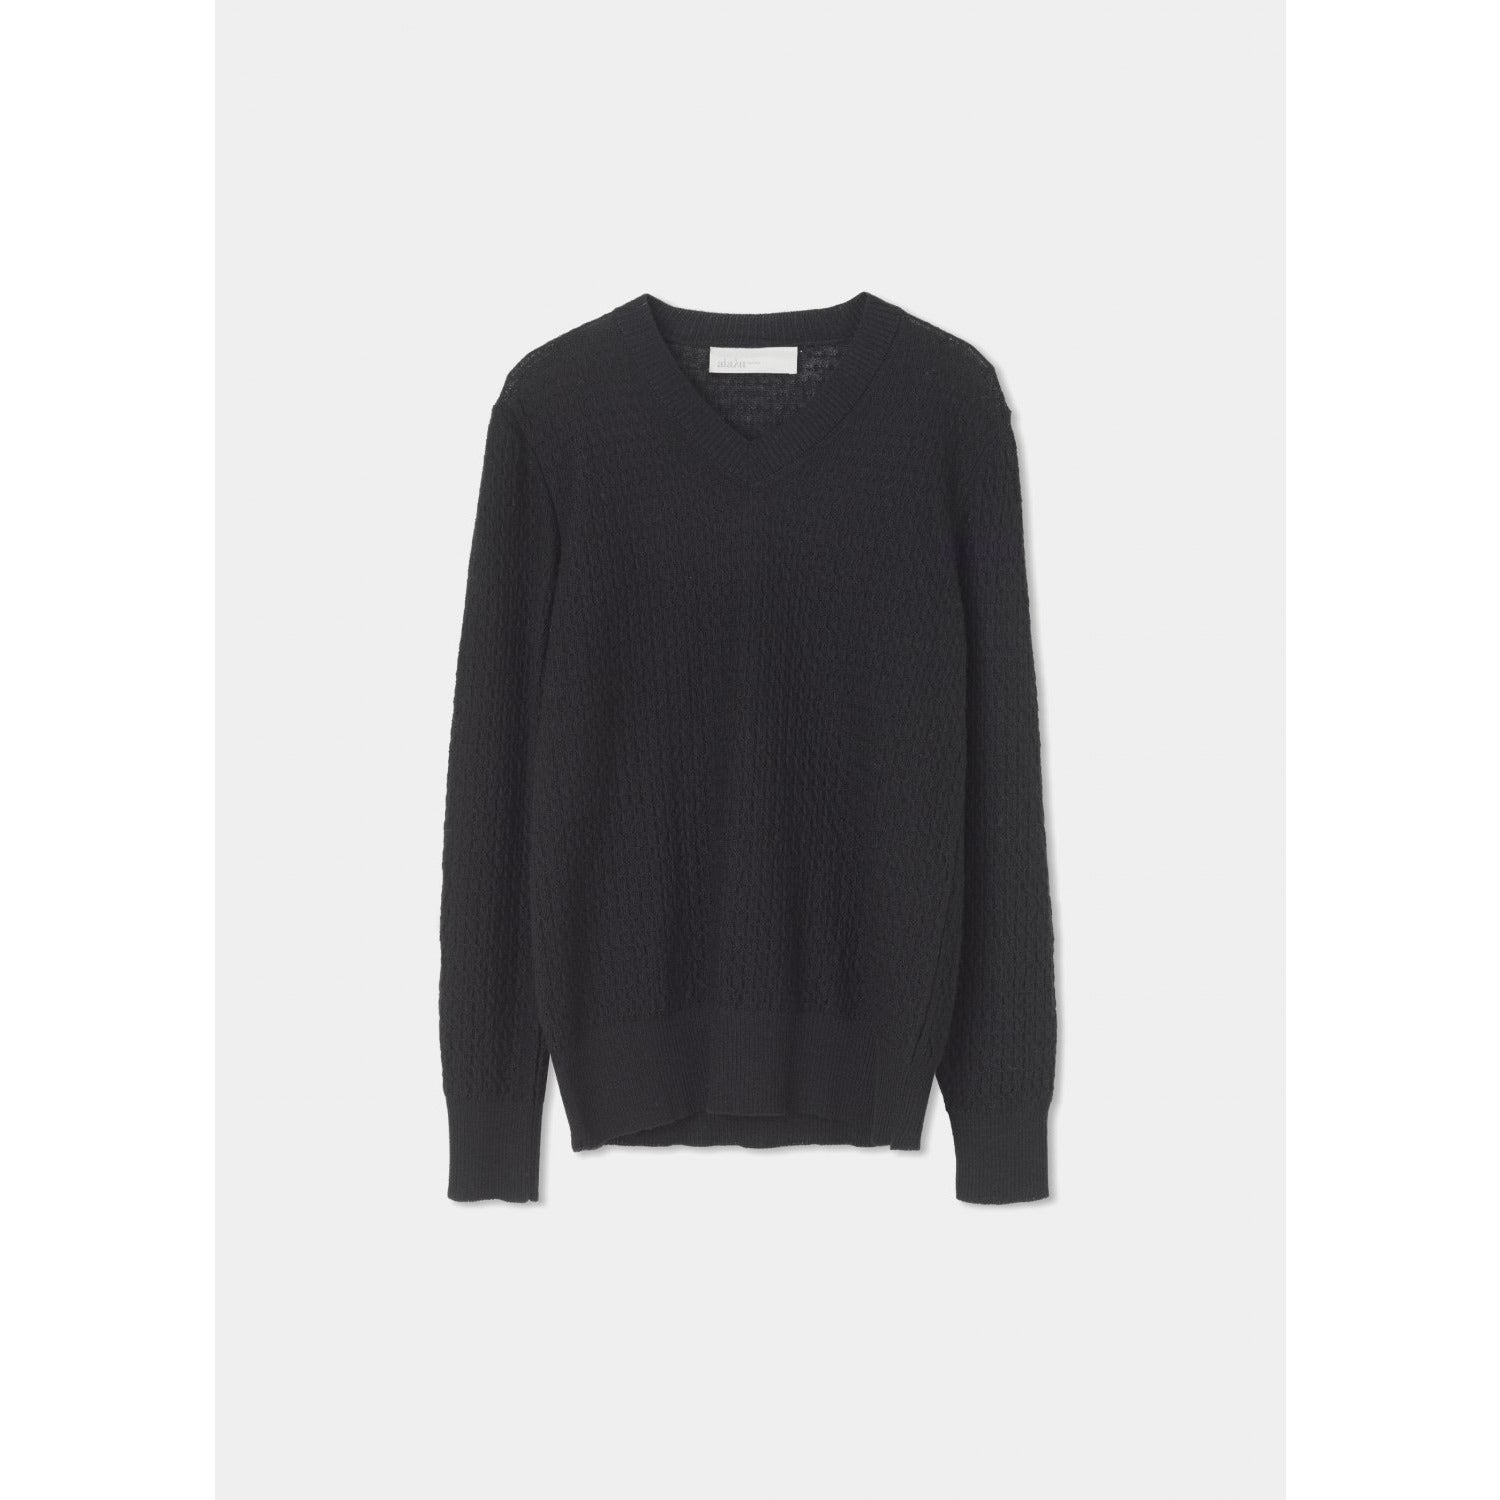 black v-neck ribbed knit sweater by designer aiayu